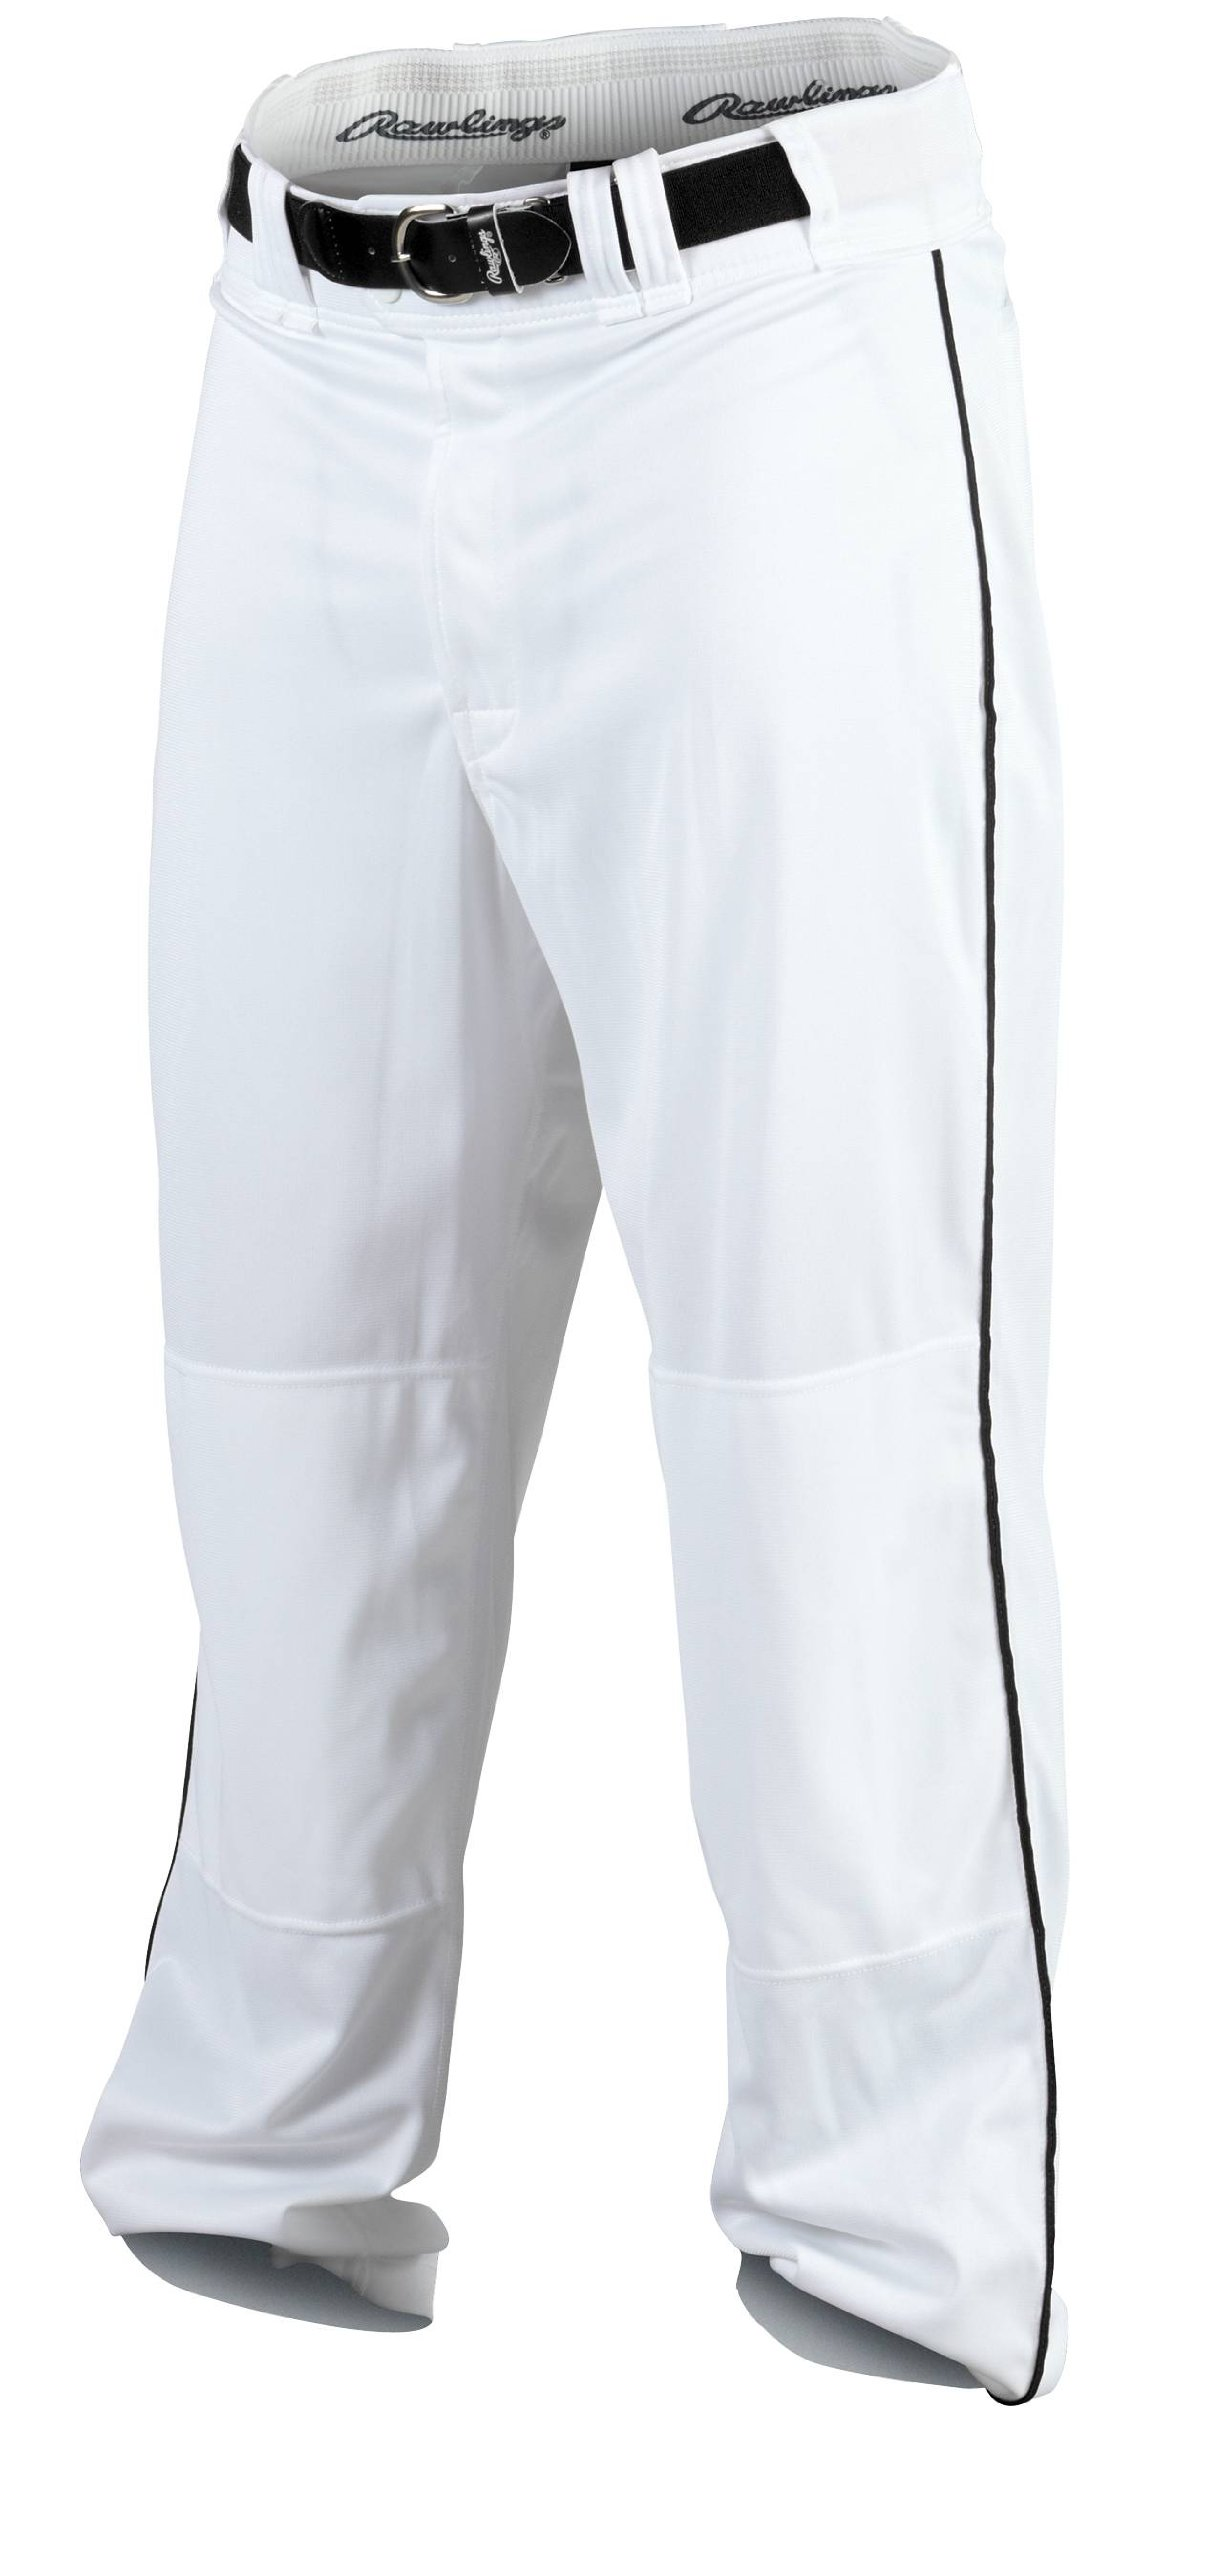 9dff926ad64 Rawlings Youth Premium Baseball Softball Semi-Relaxed Fit Piped Pants  product image